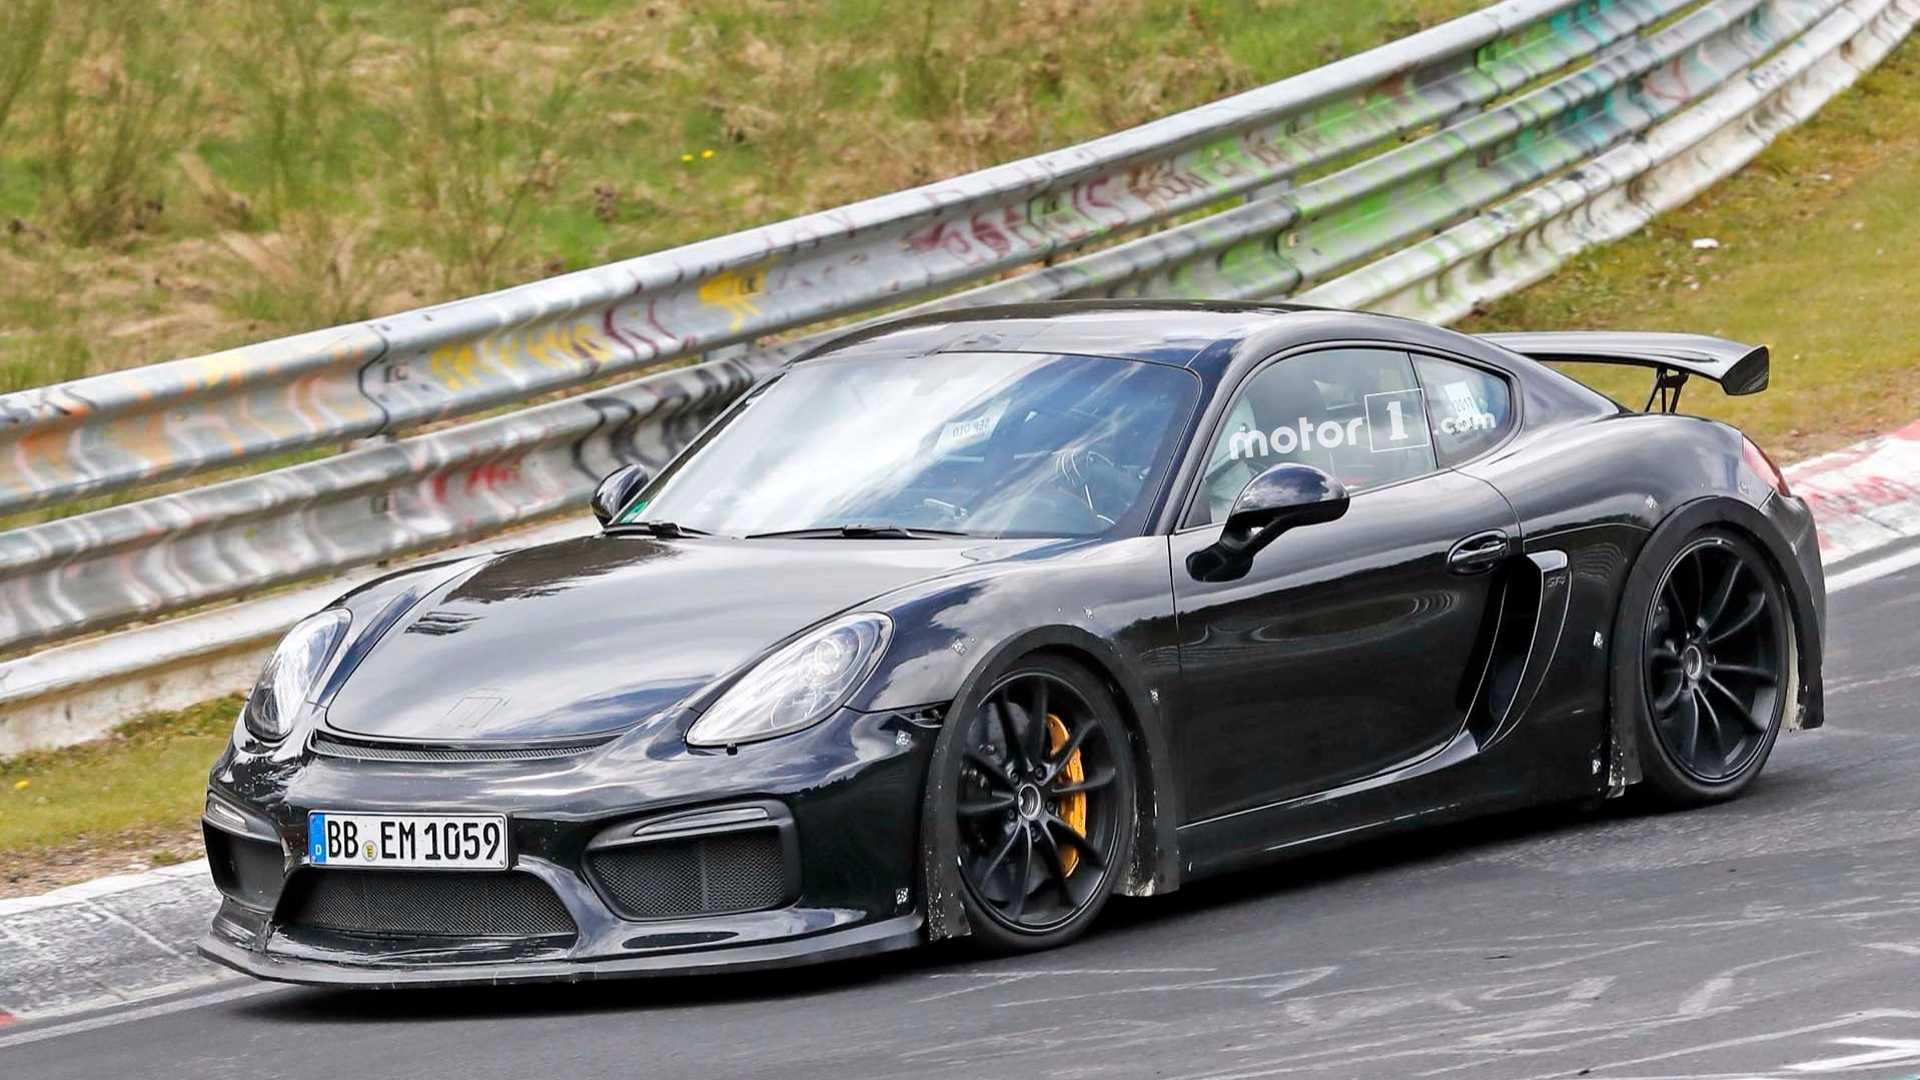 Porsche Gt4 Rs >> Porsche Cayman Gt4 Rs Spied Exercising Flat Six At Nurburgring